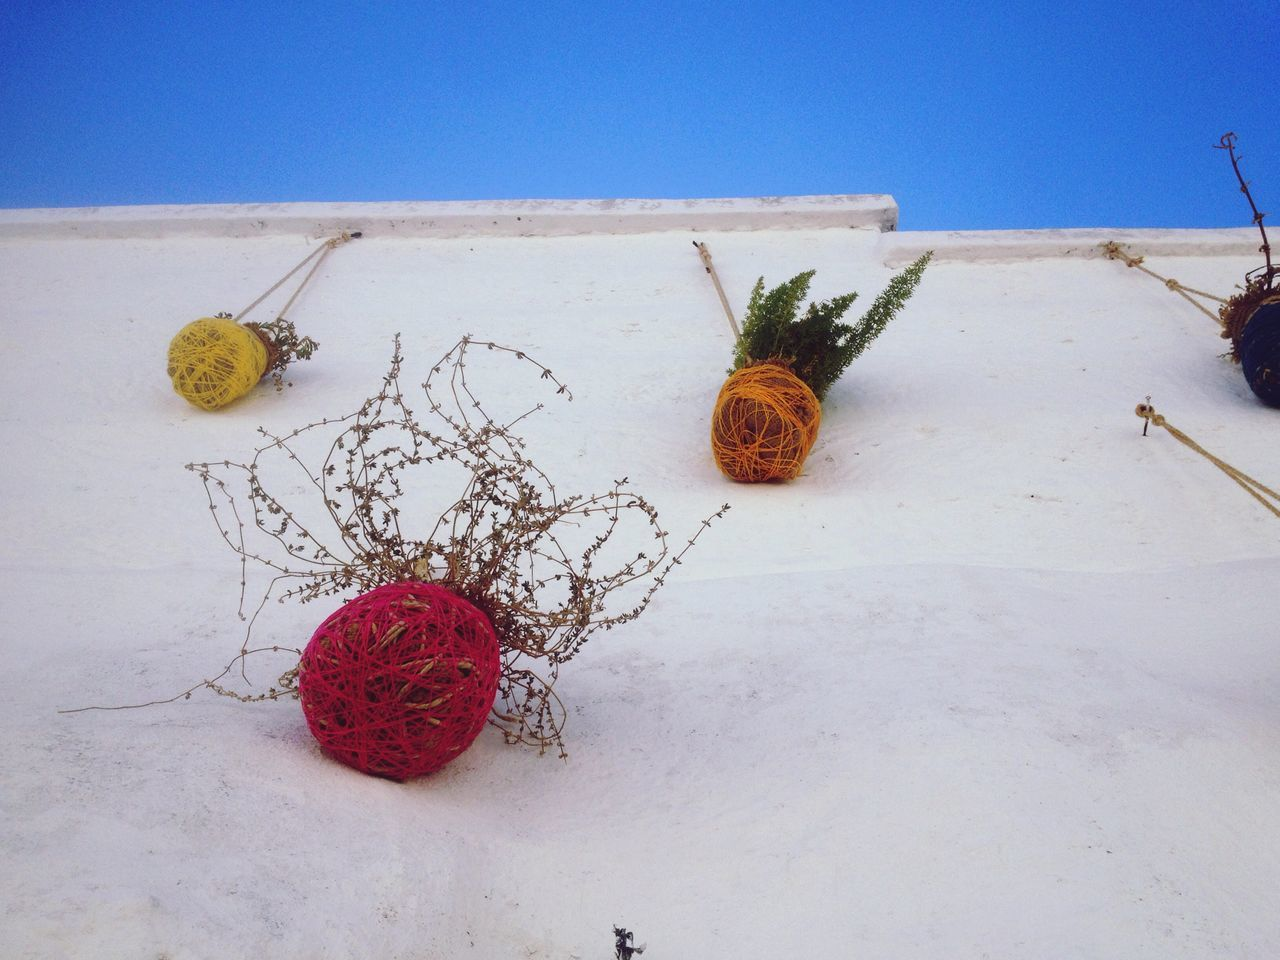 No People Day Outdoors Close-up Wall Sky Blue Blue Sky White White Wall Mediterranean  Pot Potted Plant Salento Italy